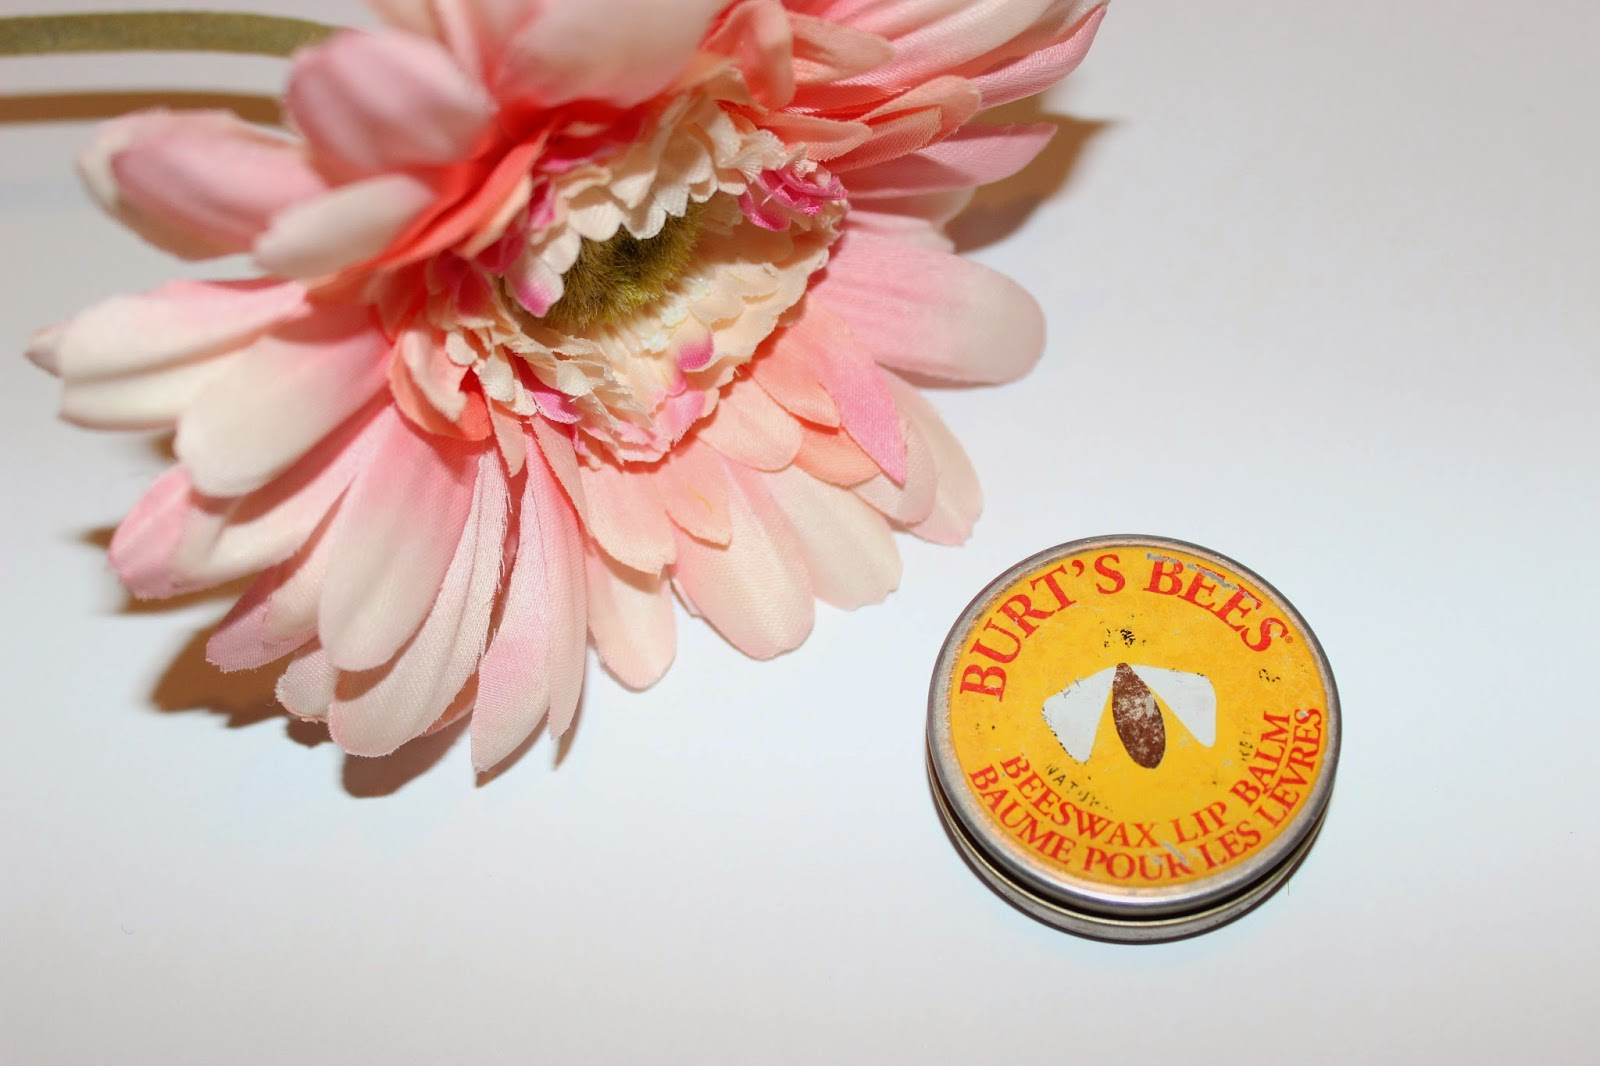 Burt's bee's Lipbalm Review